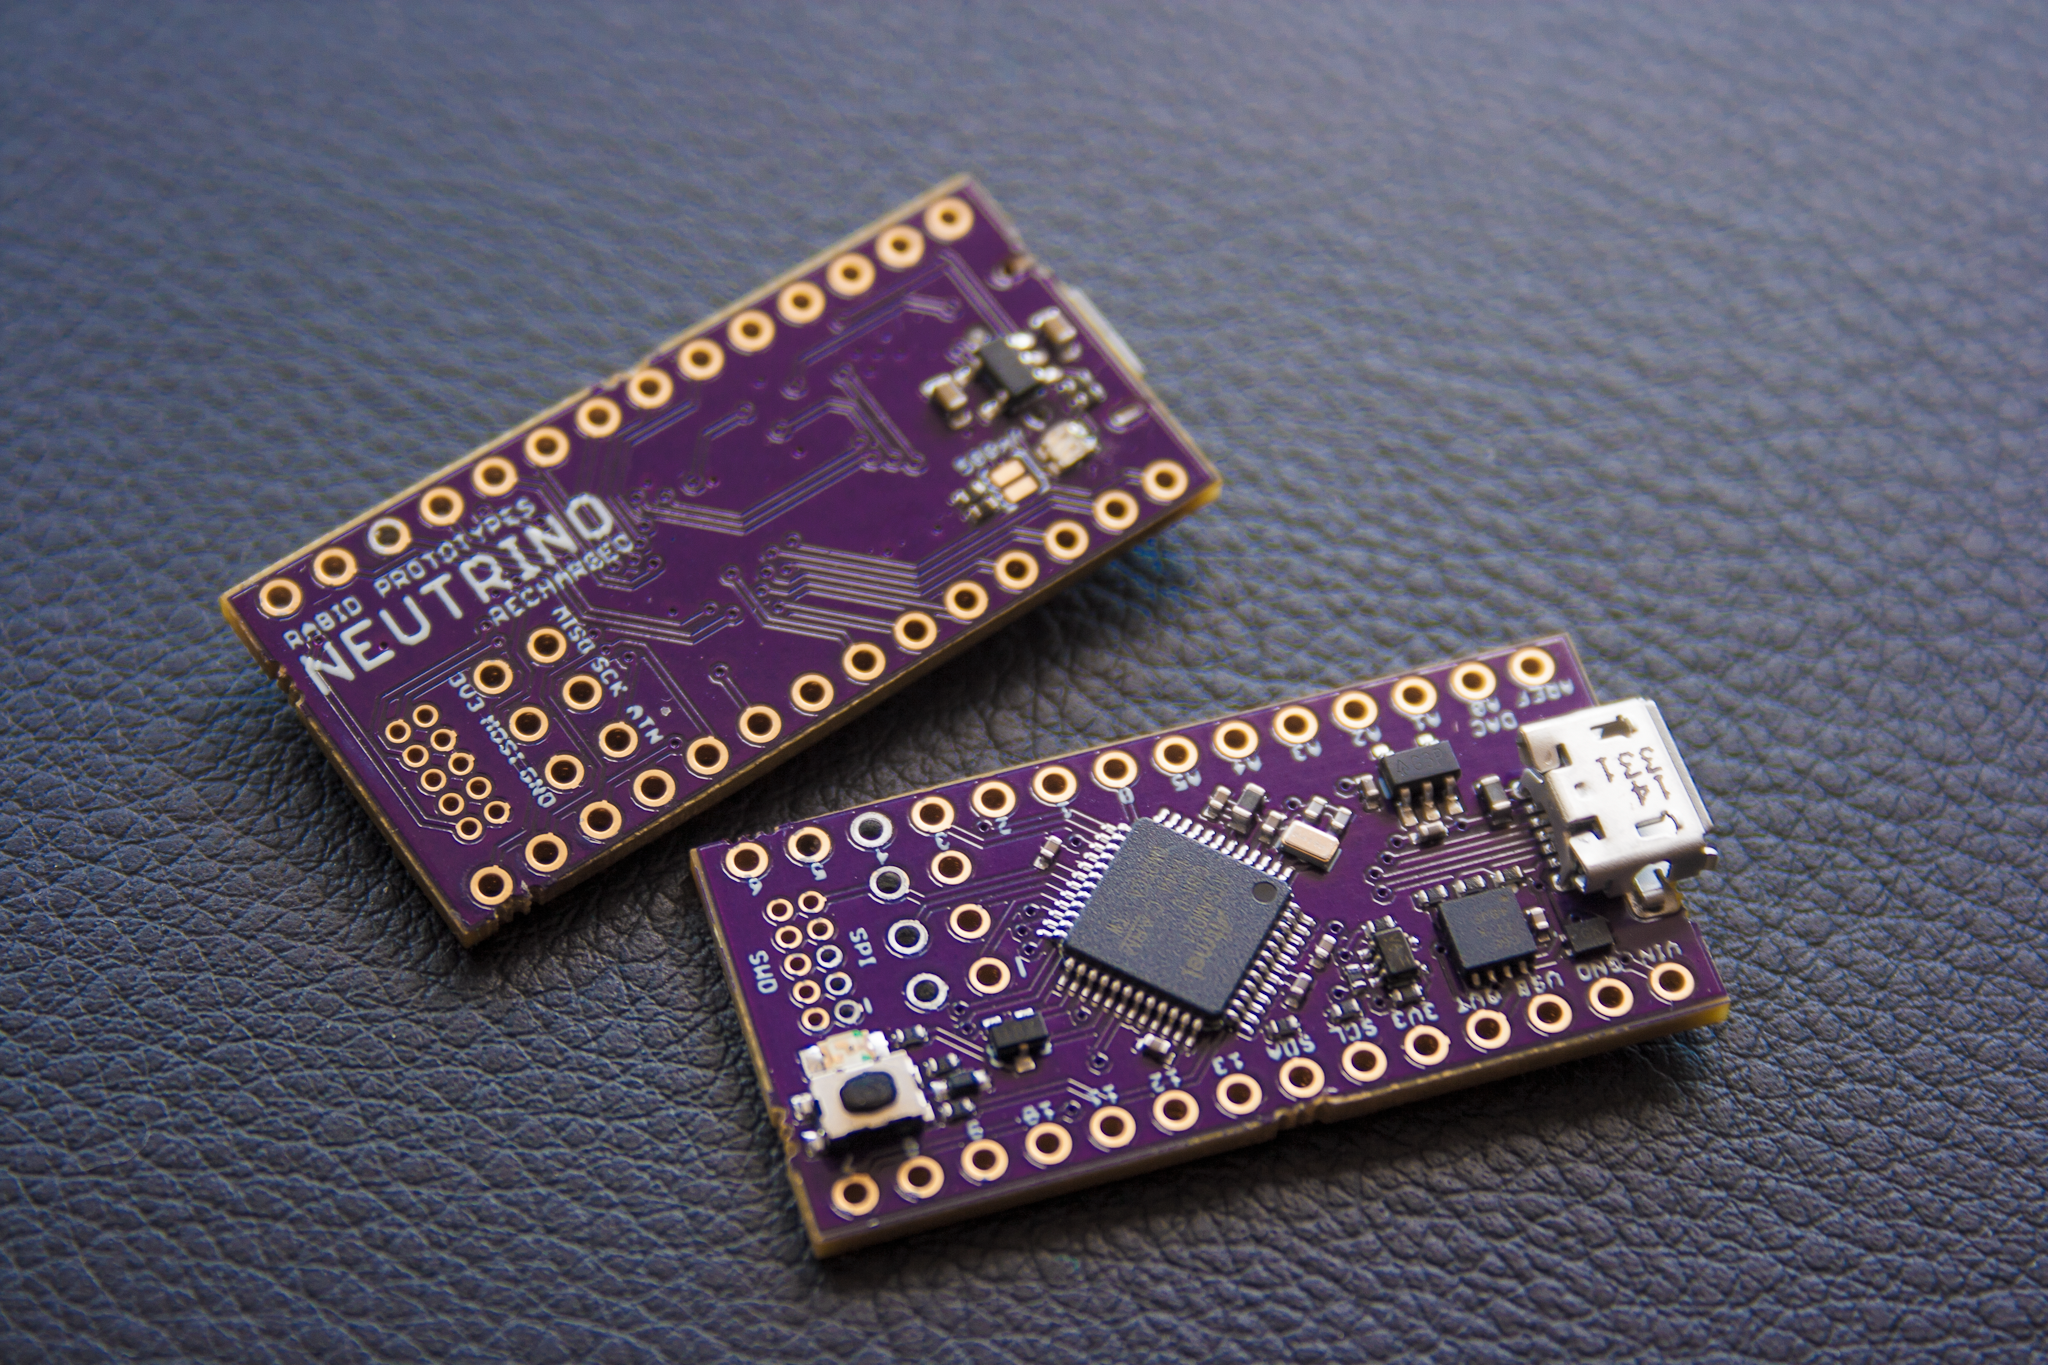 Neutrino The Tiny 32 Bit Arduino Zero Compatible By Rabid Circuit Board None Of These Boards Functioned After Being Recharged Is Just What It Sounds Like A With Built In Lipo Charger Charging